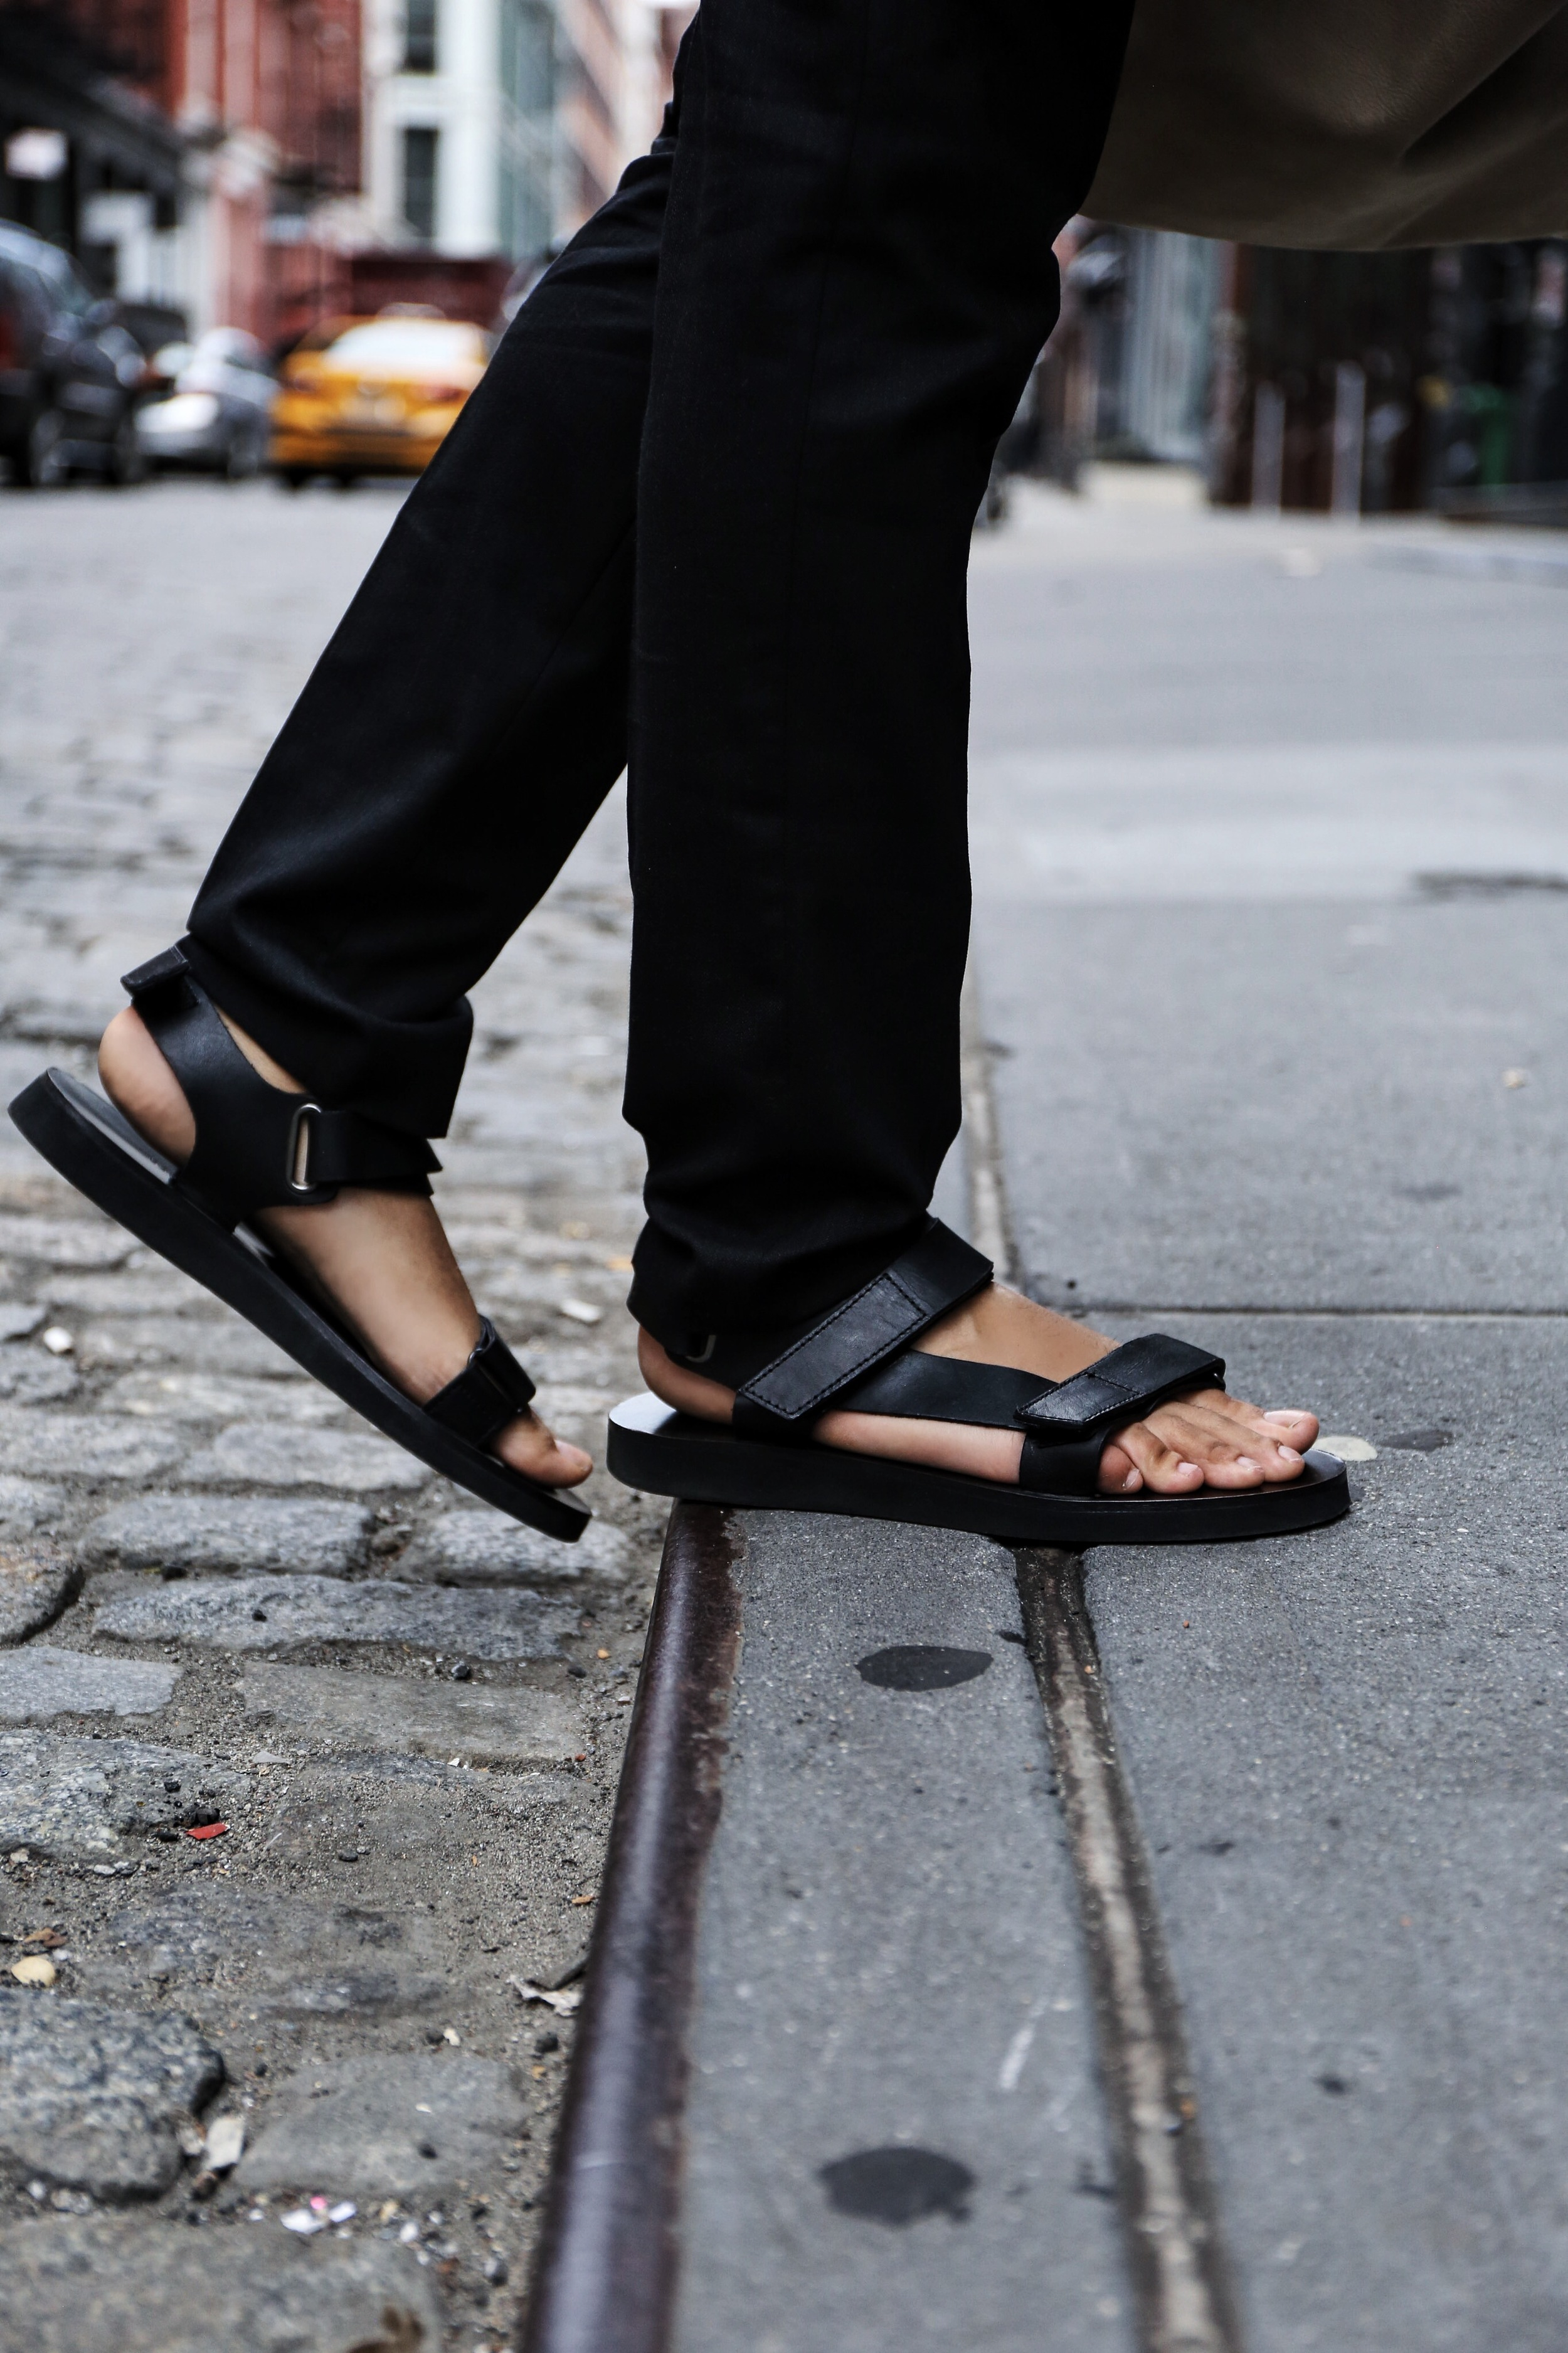 Sandals by A.P.C.